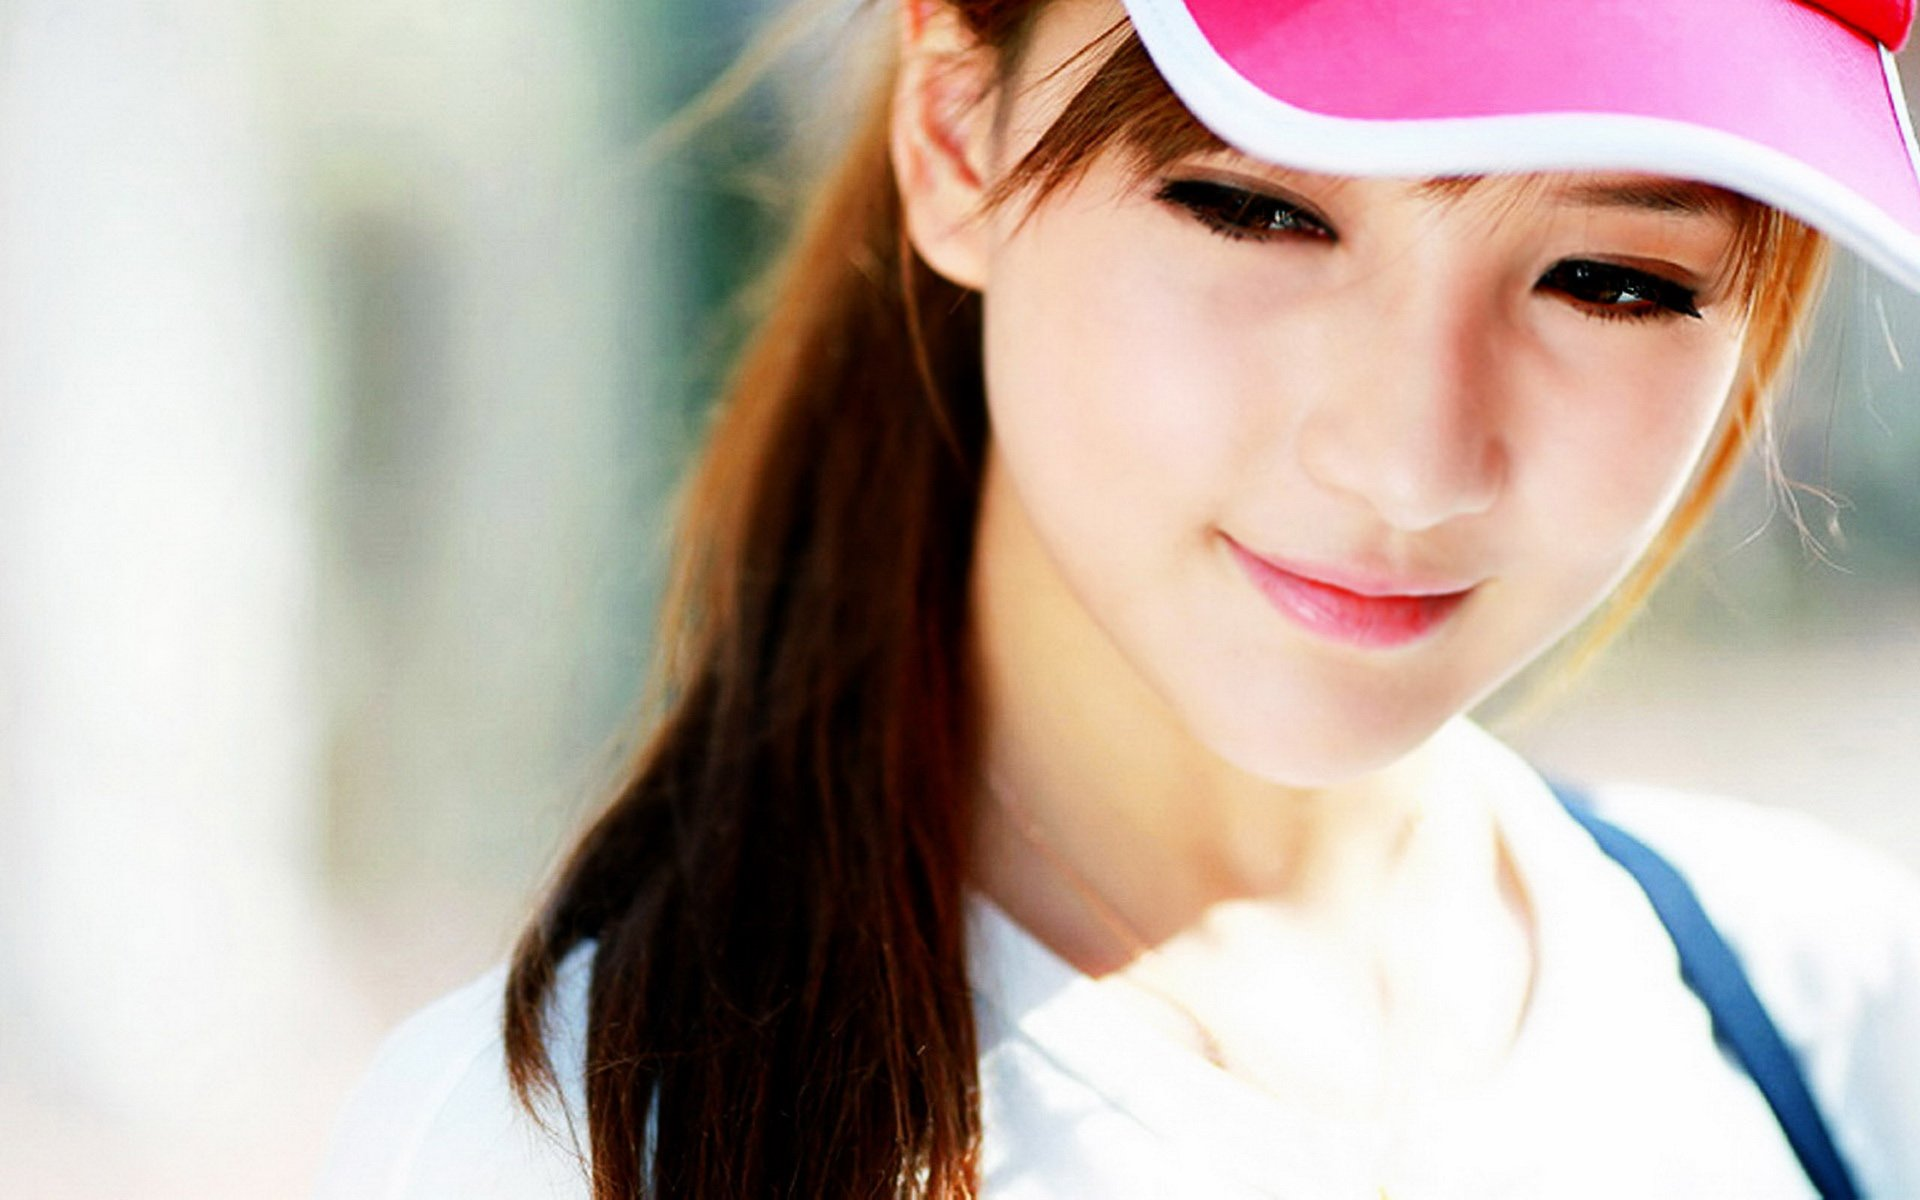 47] Cute Teen Girl Wallpapers on WallpaperSafari 1920x1200